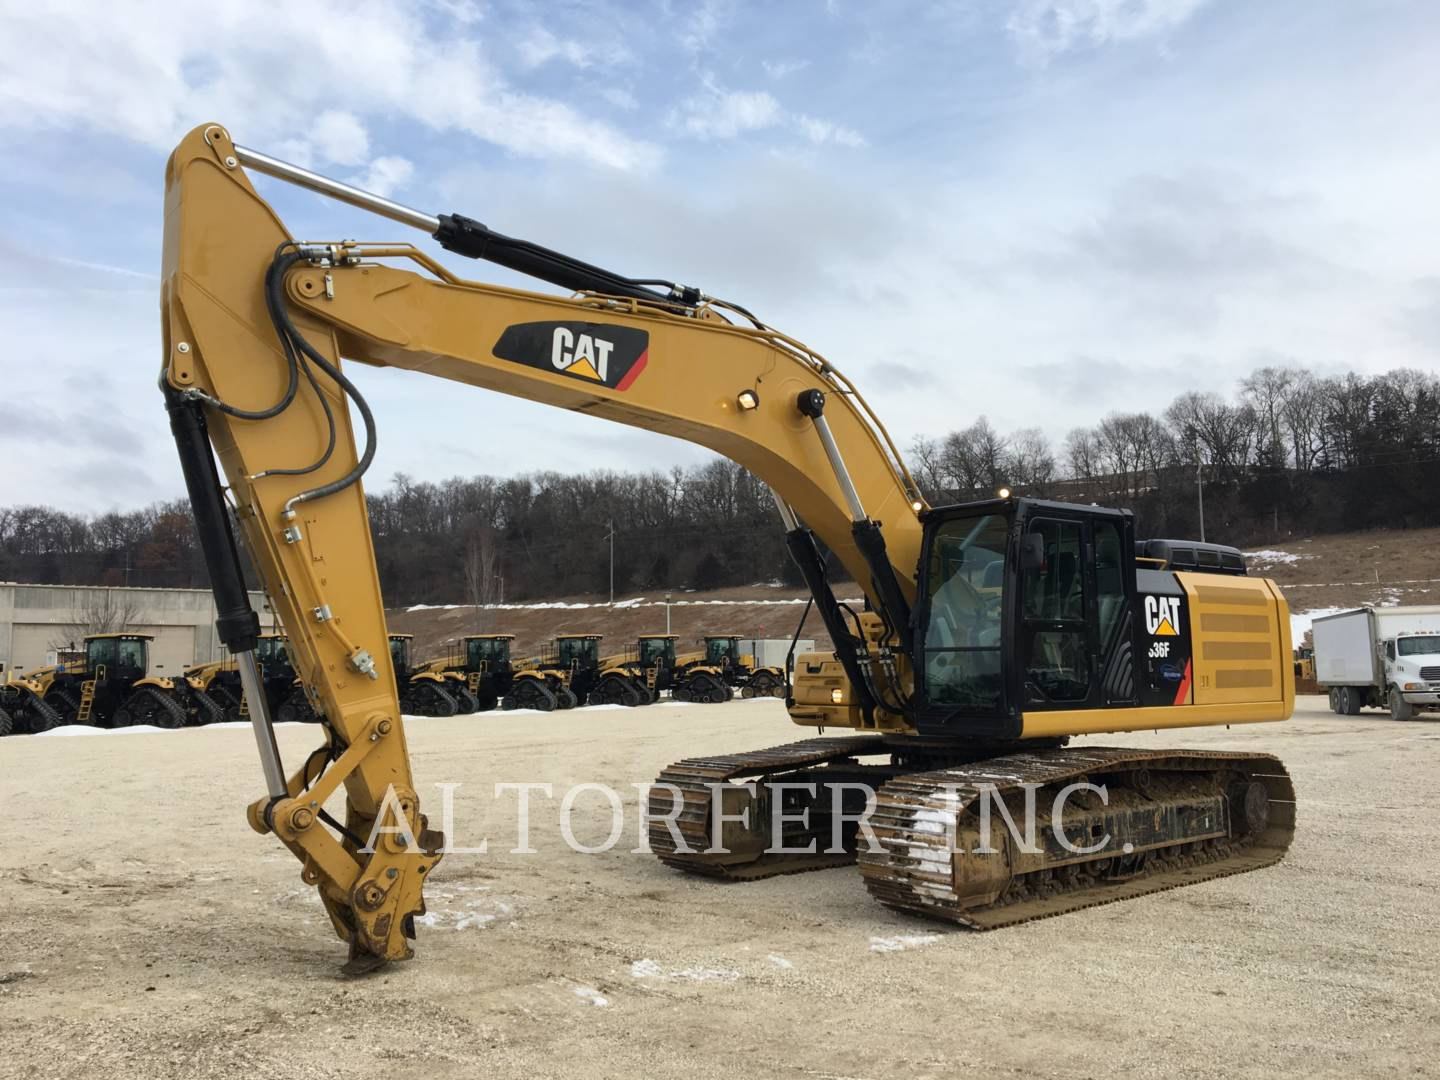 2017 Caterpillar 336FL - Altorfer